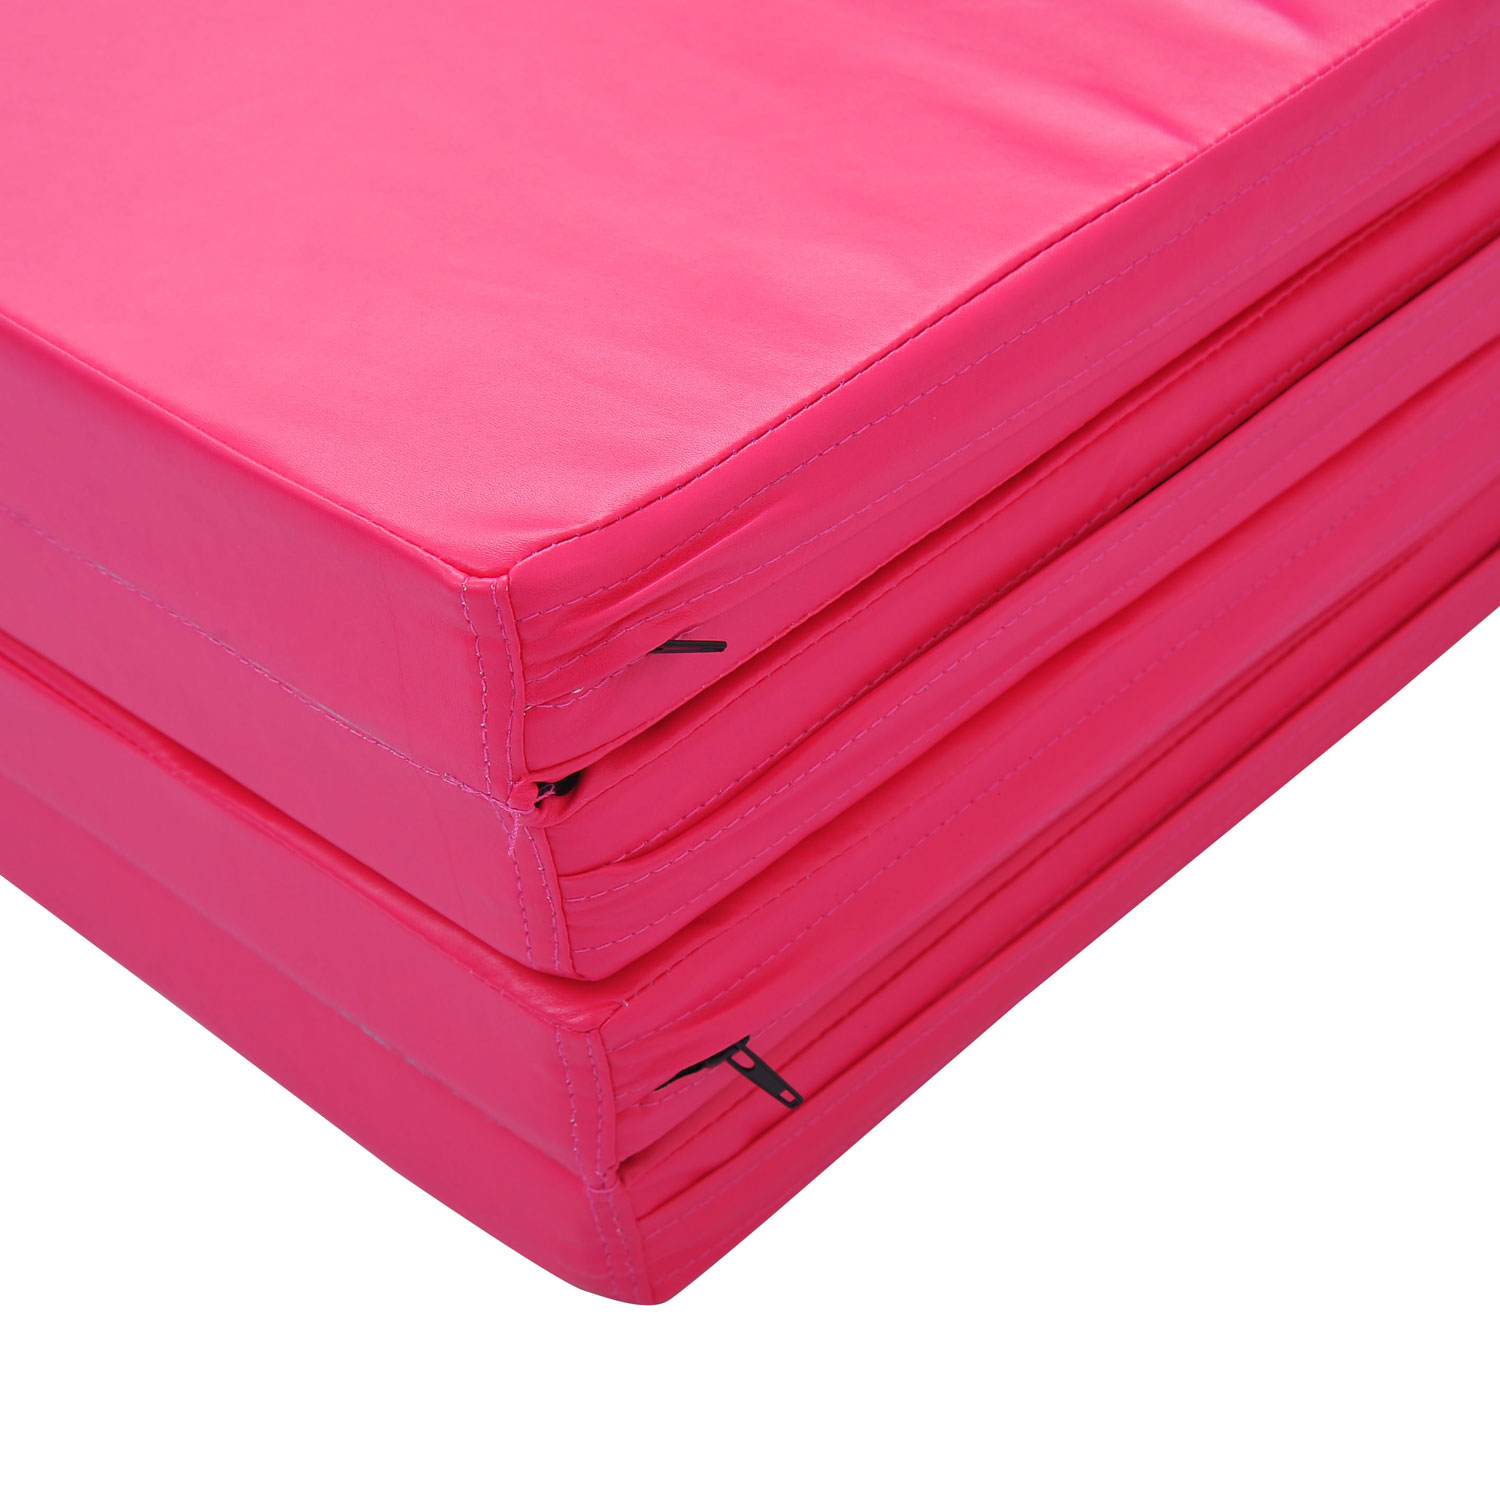 "Soozier 10' x 4' x 2"" PU Leather Folding Gymnastics Tumbling / Martial Arts Mat with Handles - Pink 4"